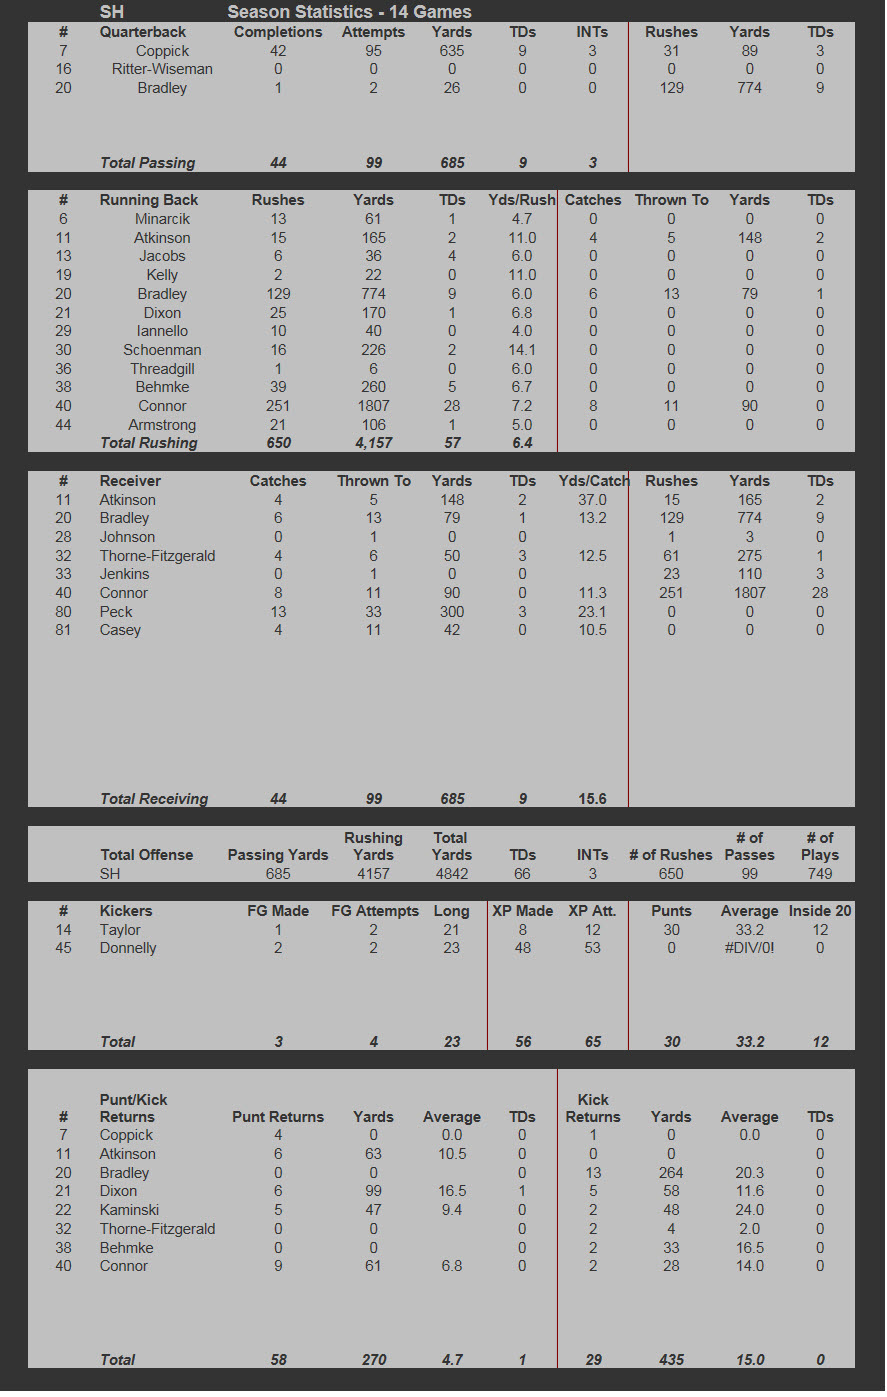 2003 Offensive Stats